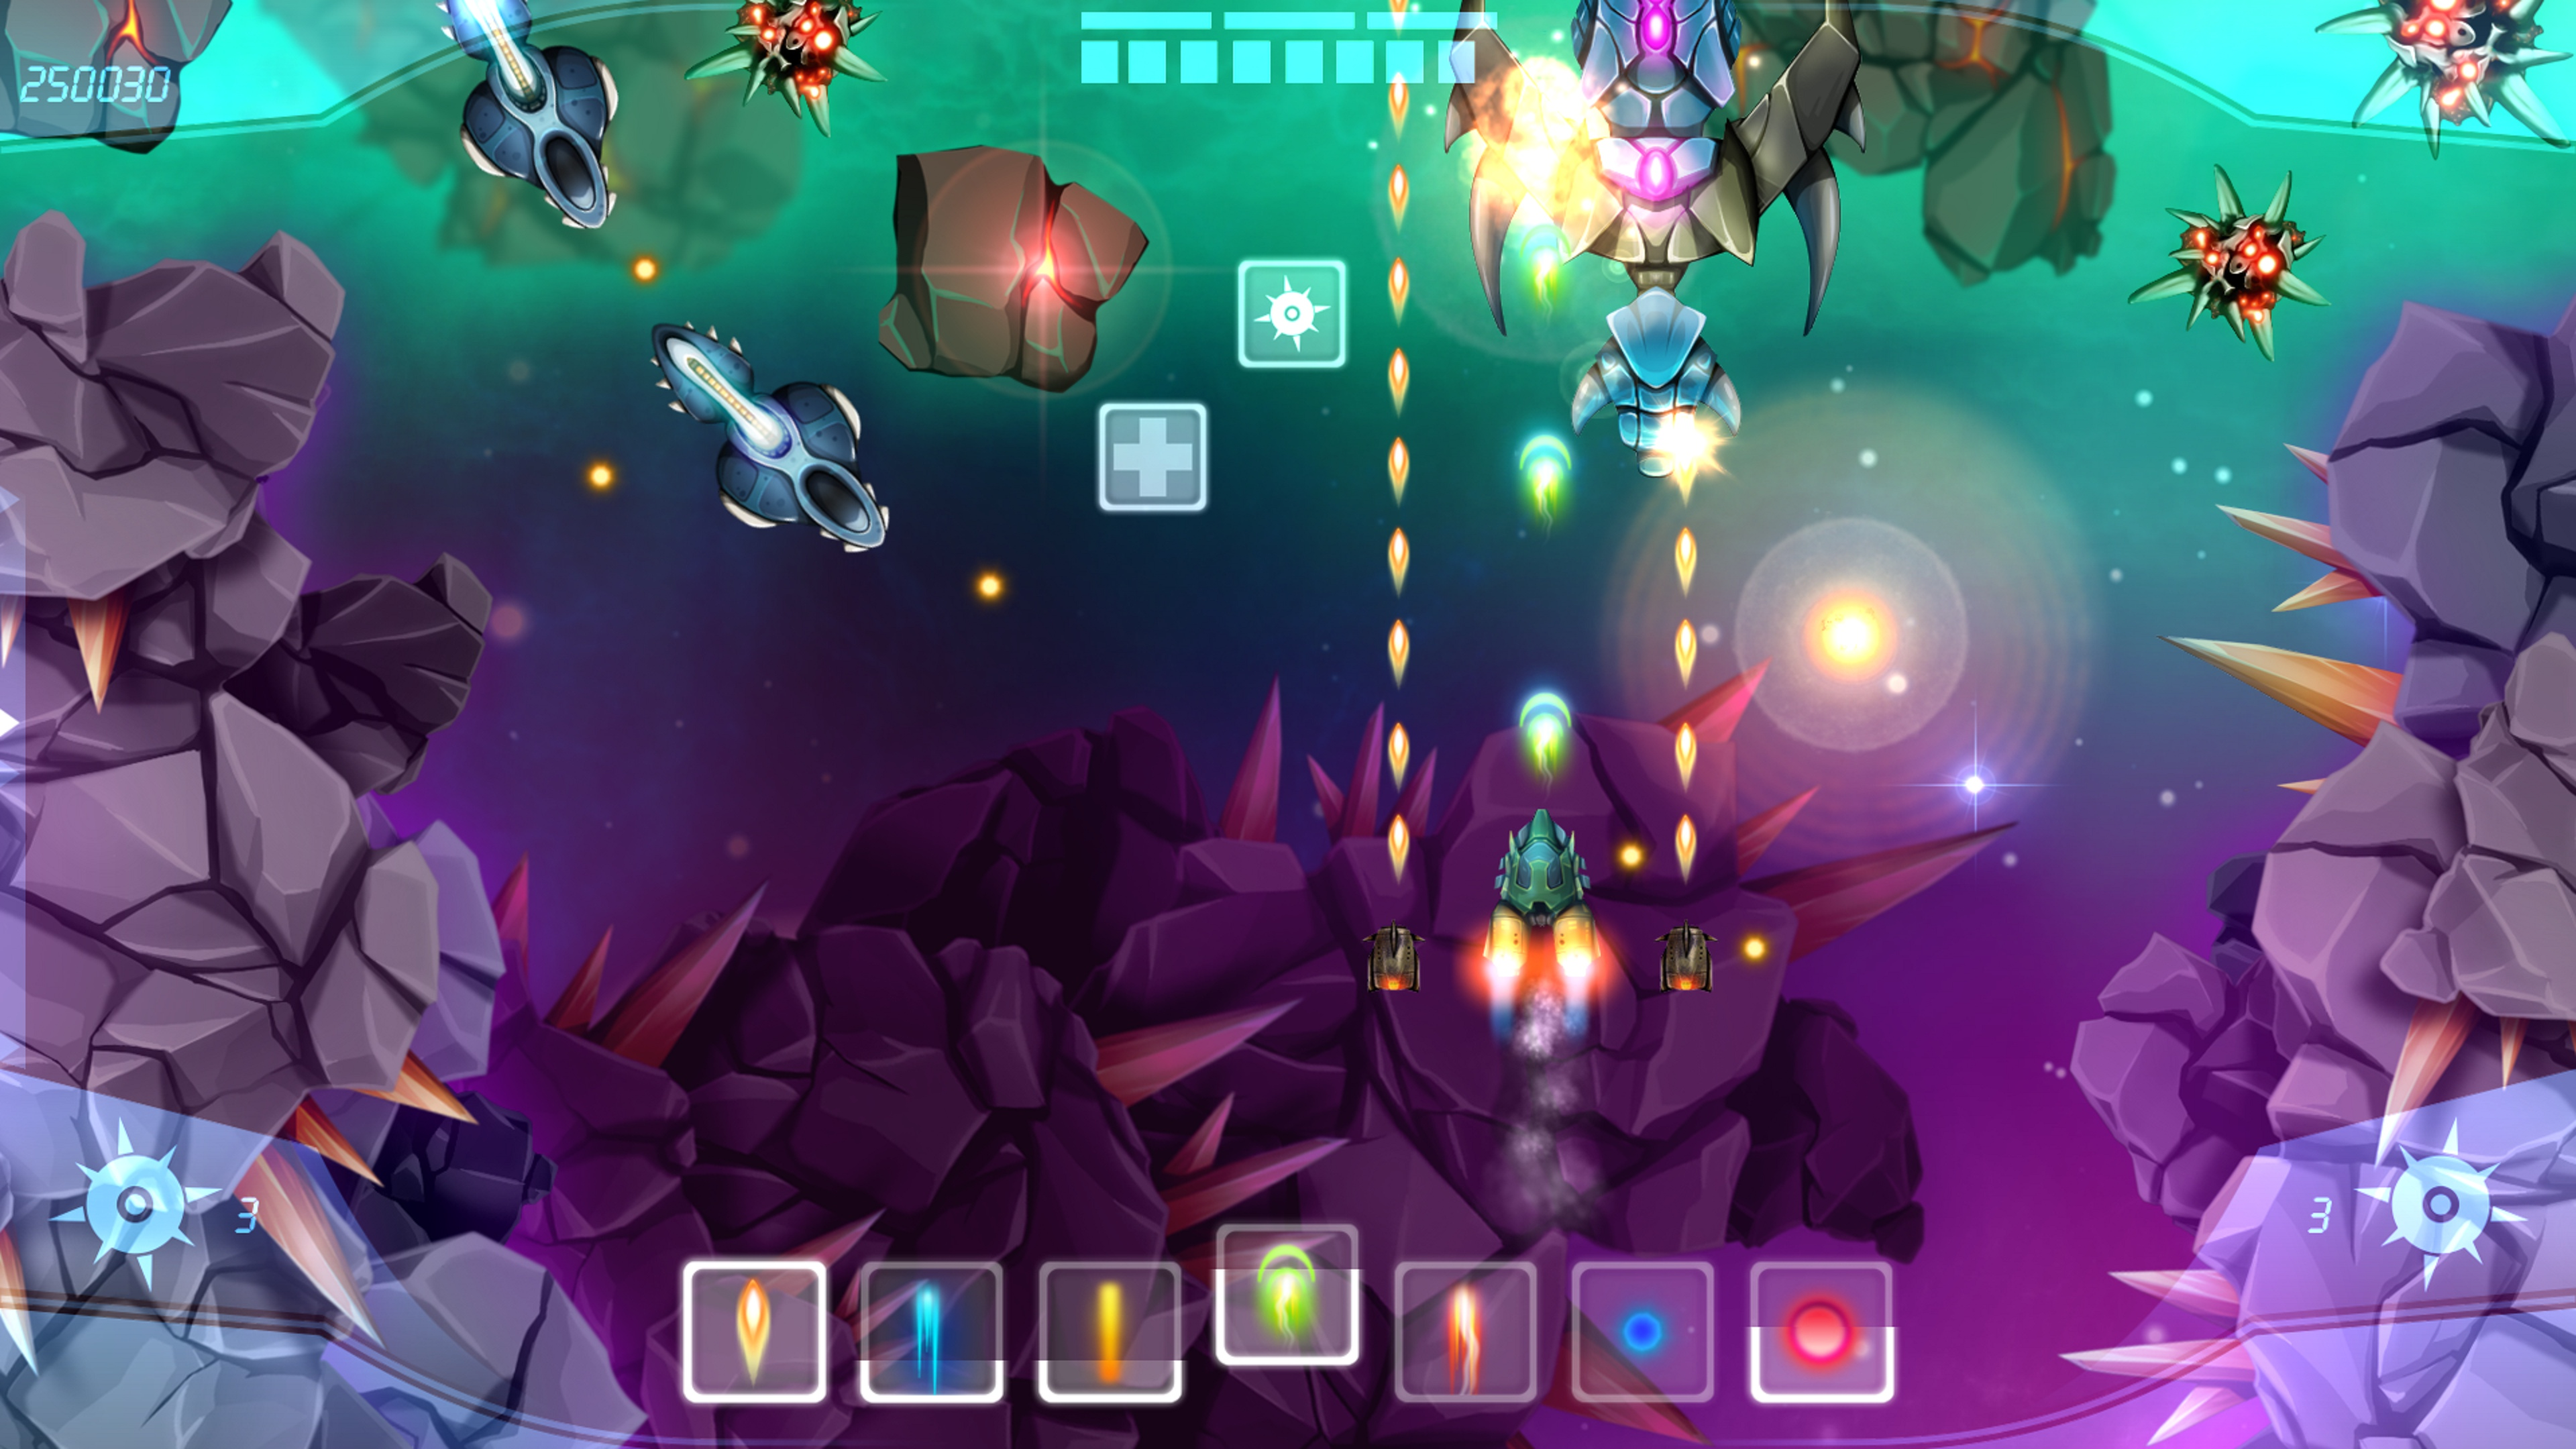 Aaero is a Trippy Rhythm-Action Game Perfectly Suited For